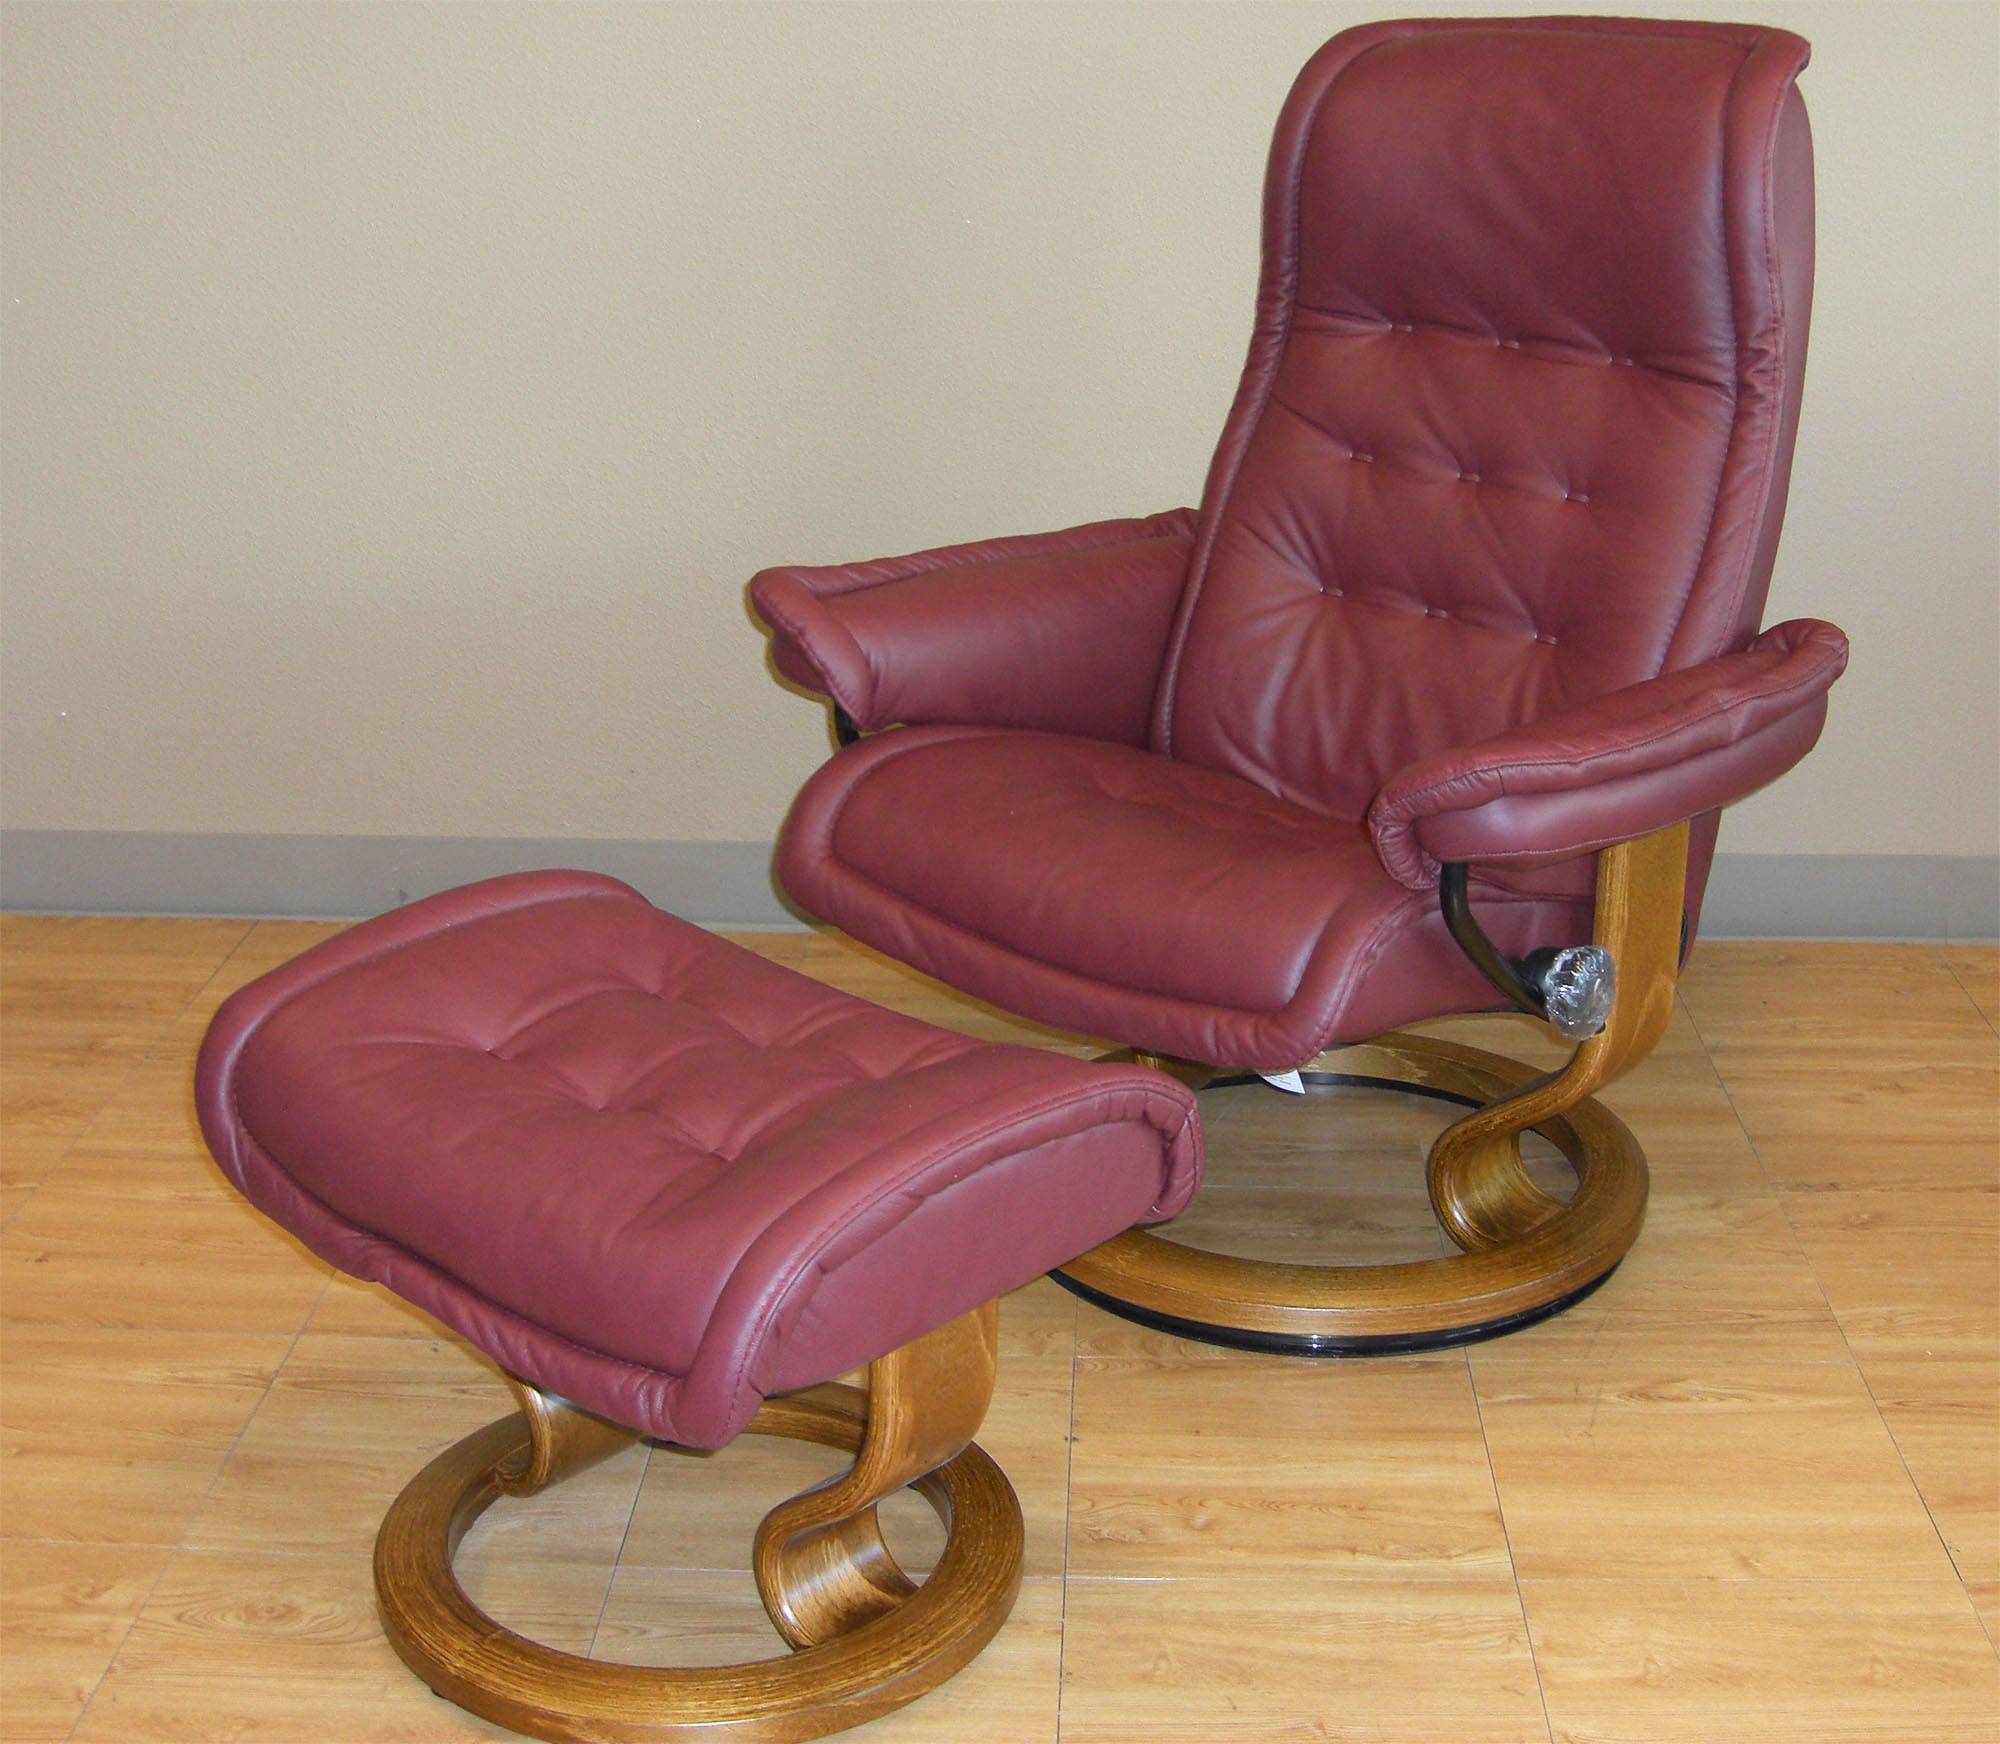 Royal recliner